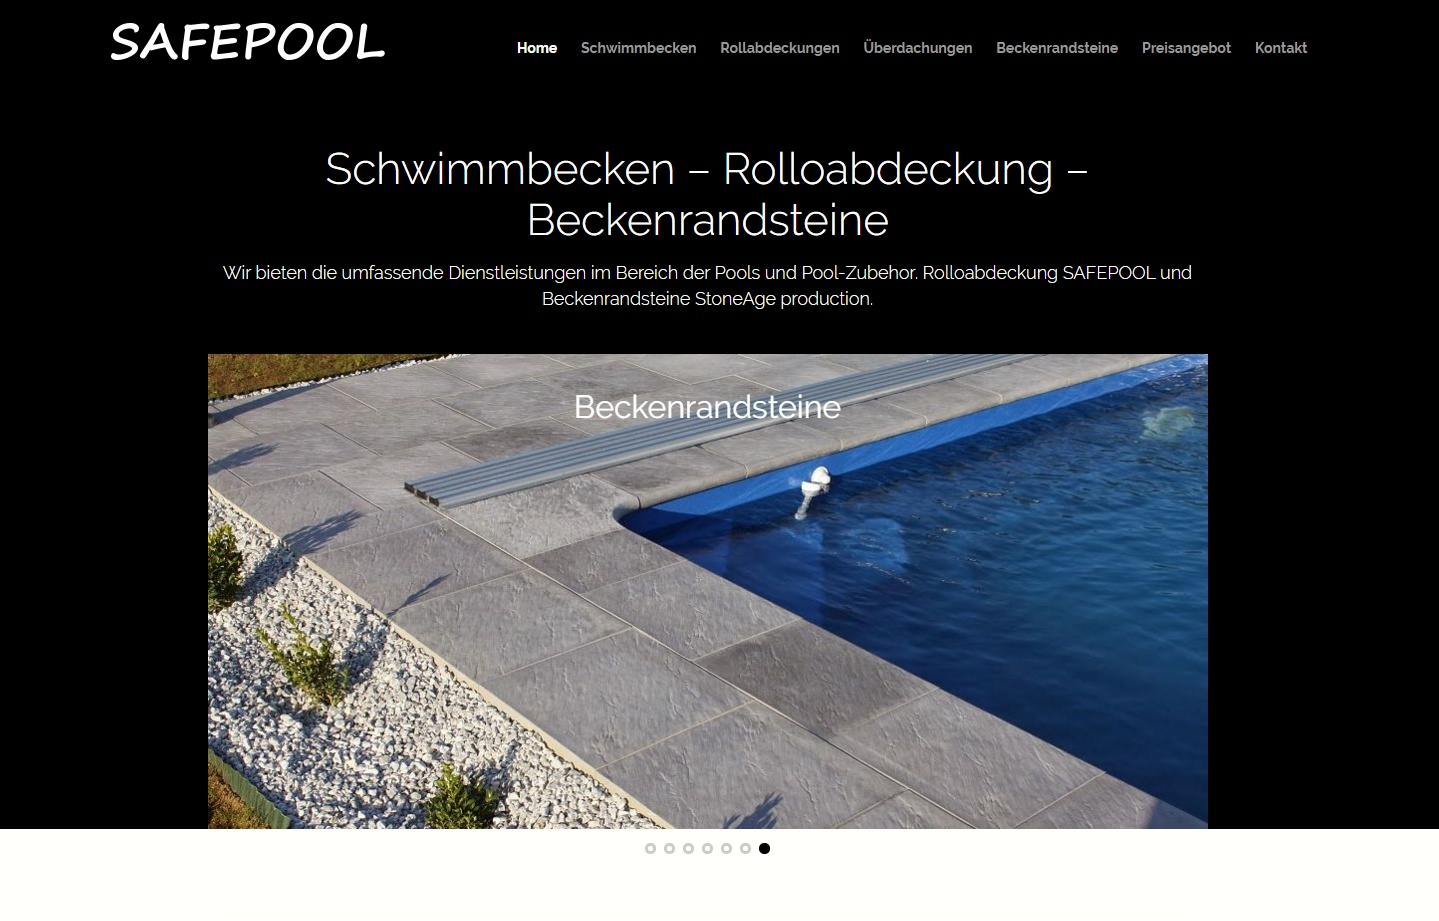 New website safepool.de